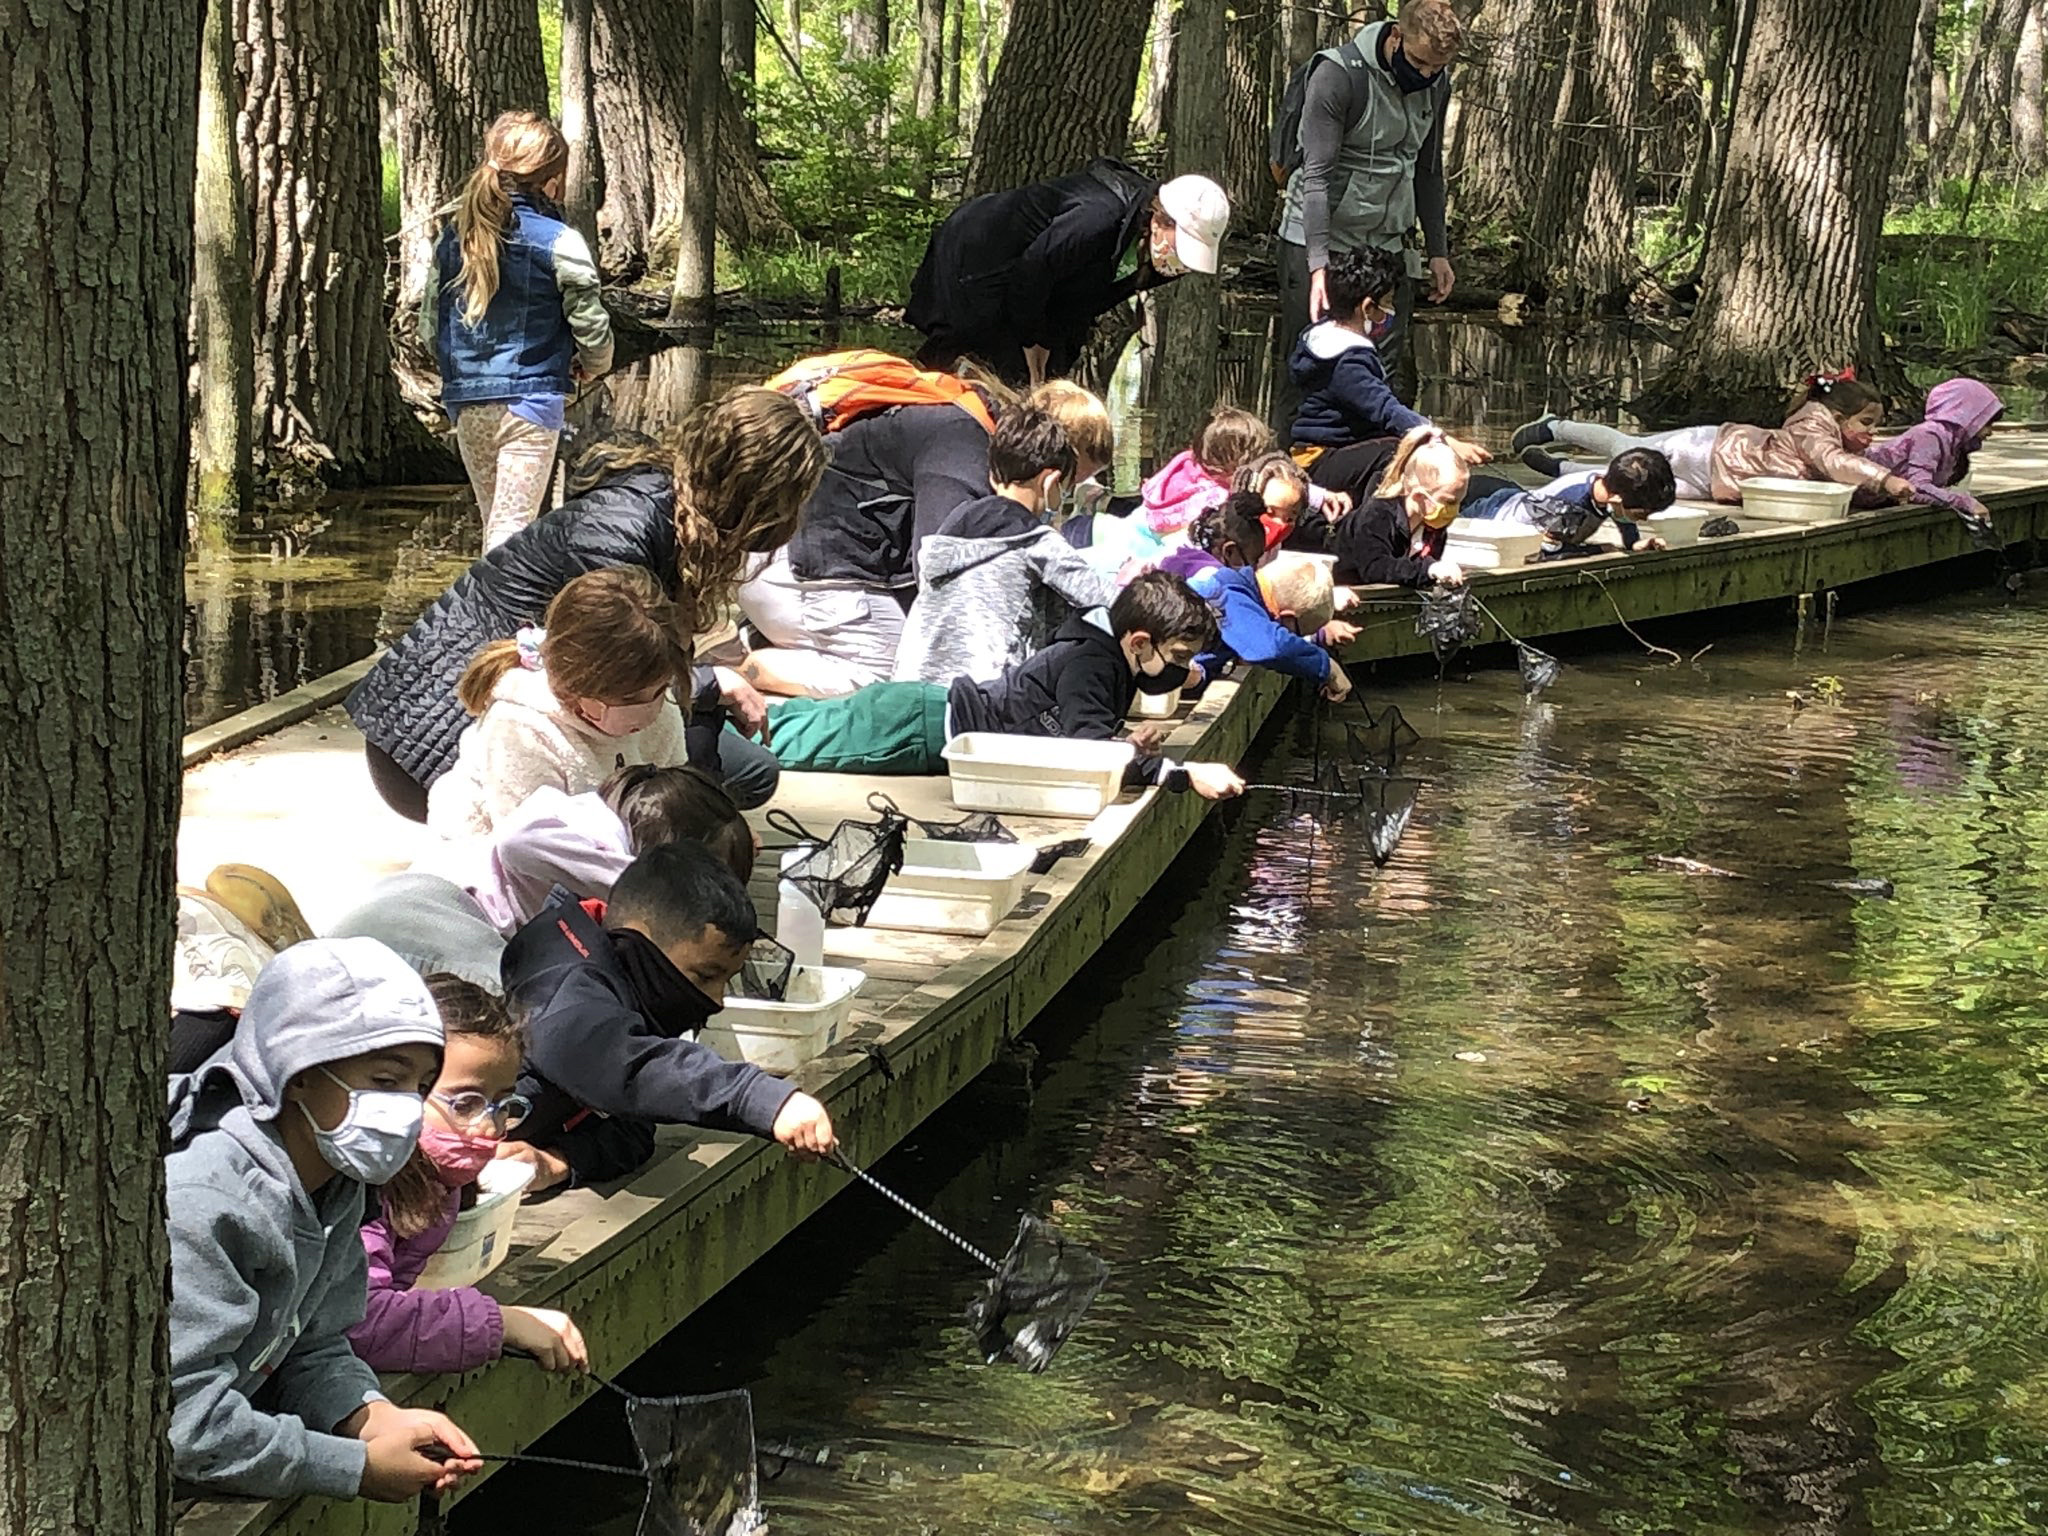 First graders from Thorpe Creek Elementary School in Indiana dip for aquatic macroinvertebrates in the swamp. (Photo provided by U.S. Department of Education)